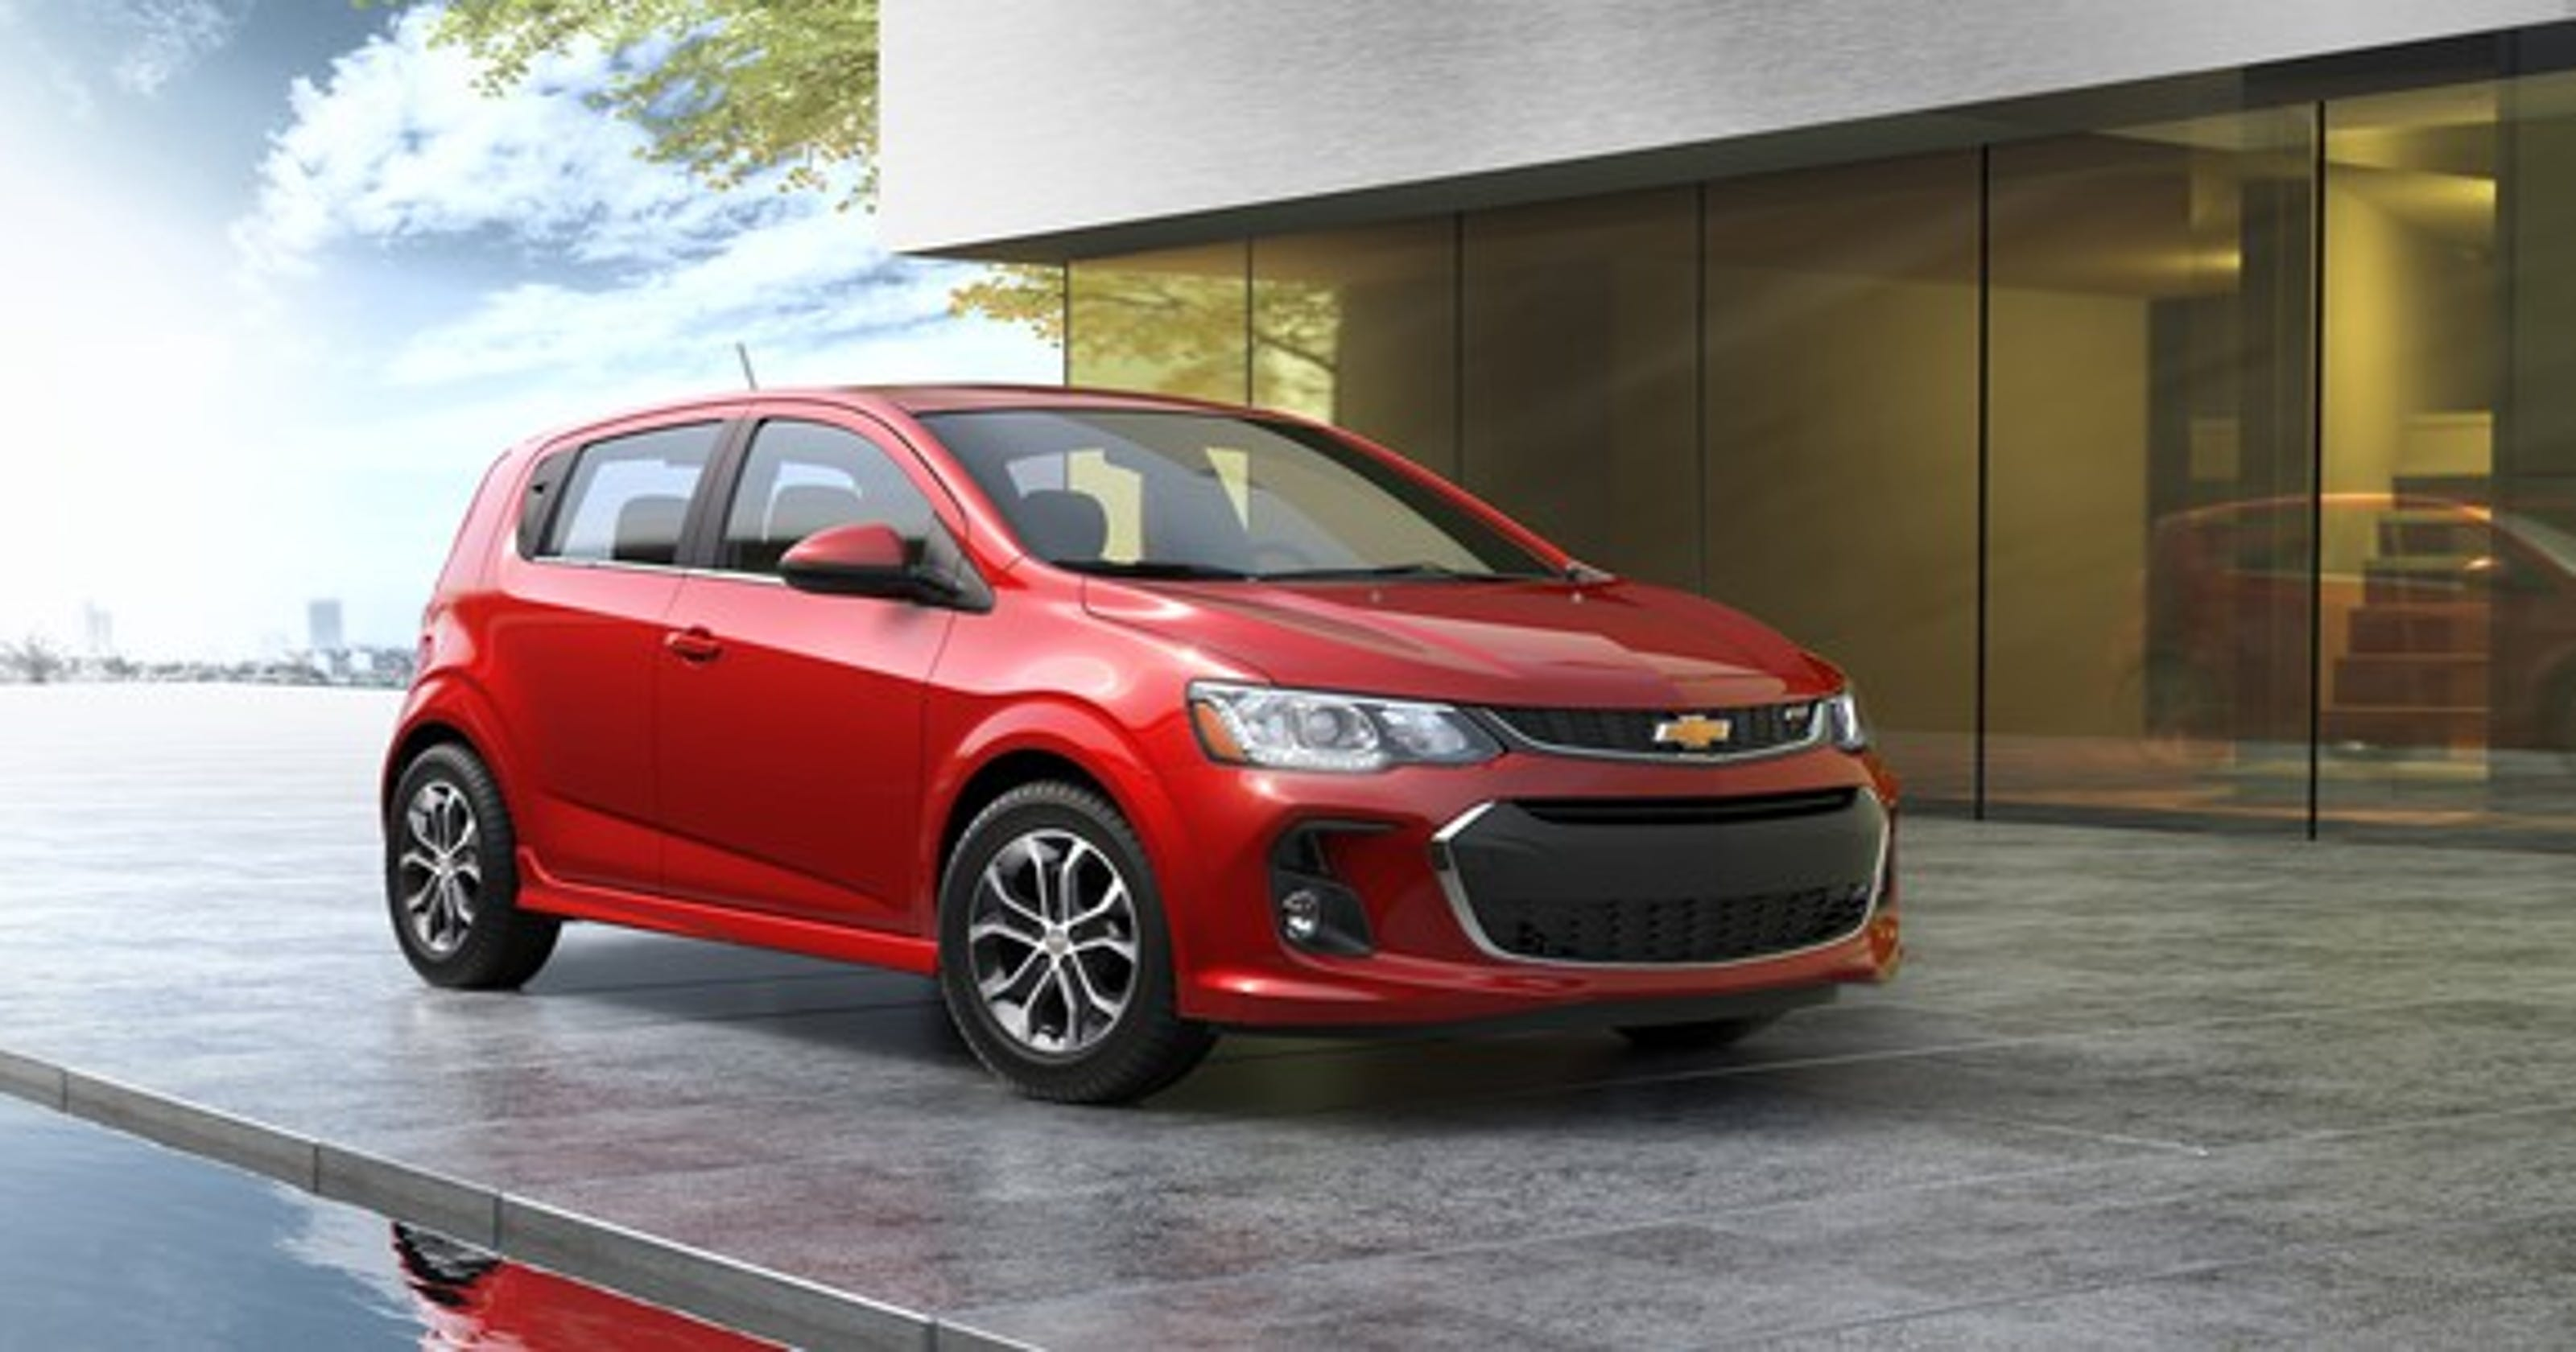 Build Your Own Custom Ford Vehicle Damerow Ford >> Gm S Chevrolet Sonic Ford S Fiesta Taurus To Be Killed Report Says